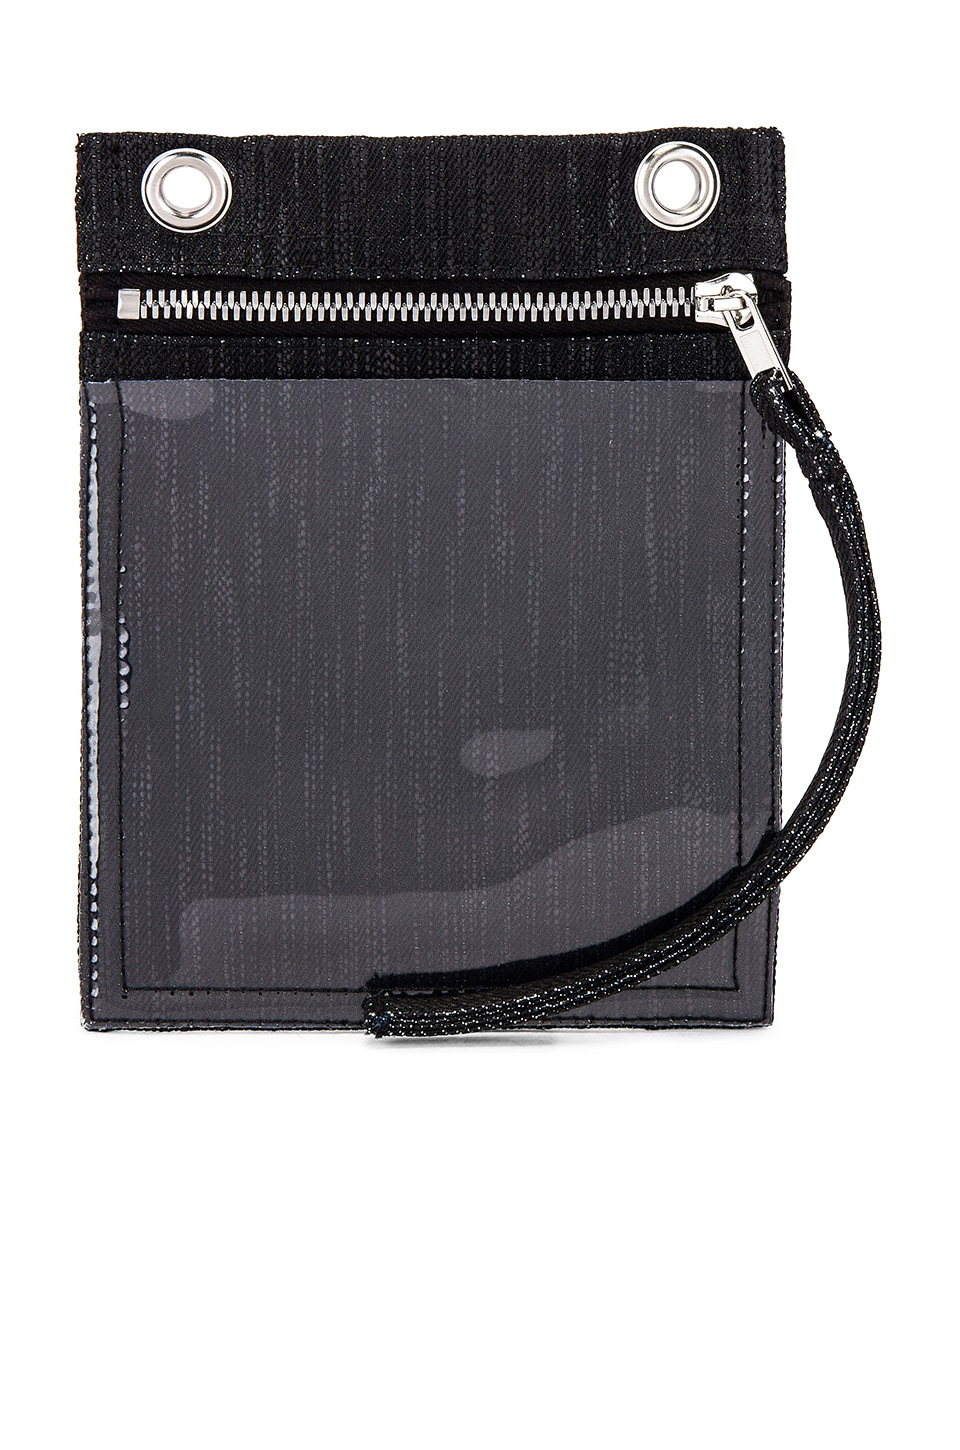 DRKSHDW by Rick Owens Security Pocket Bag in Black